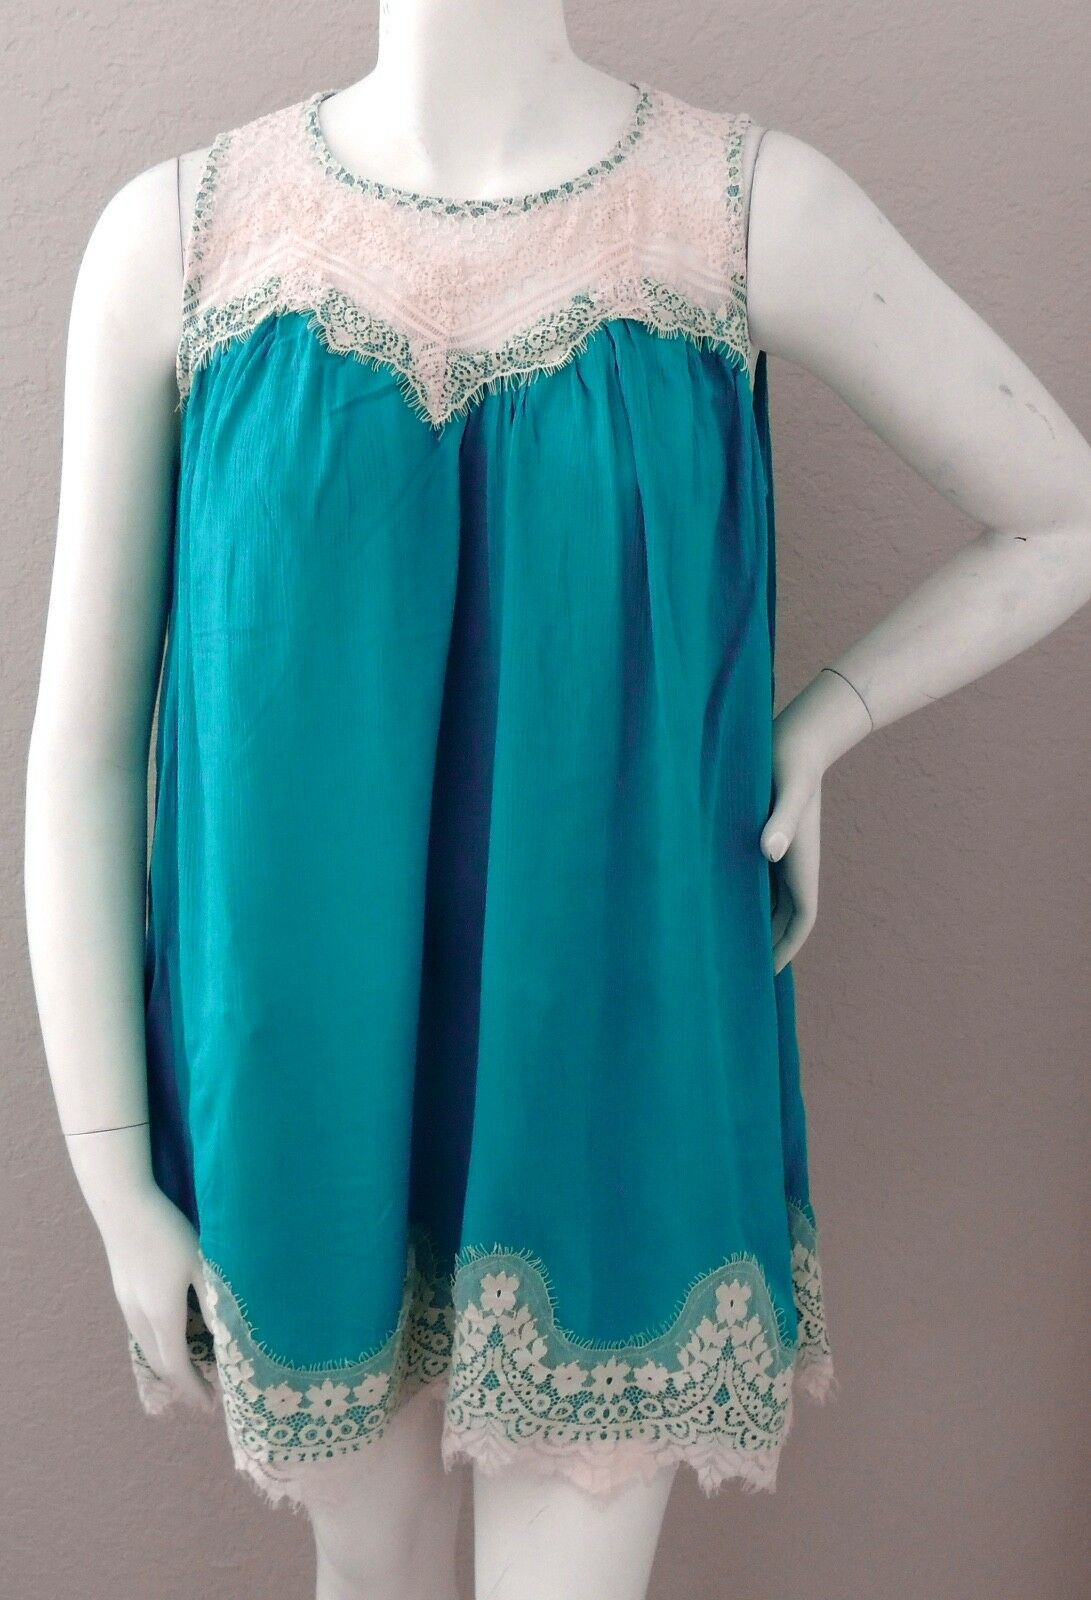 Umgee USA Lace Baby Doll Tunic Swing Dress Teal Blue Green P